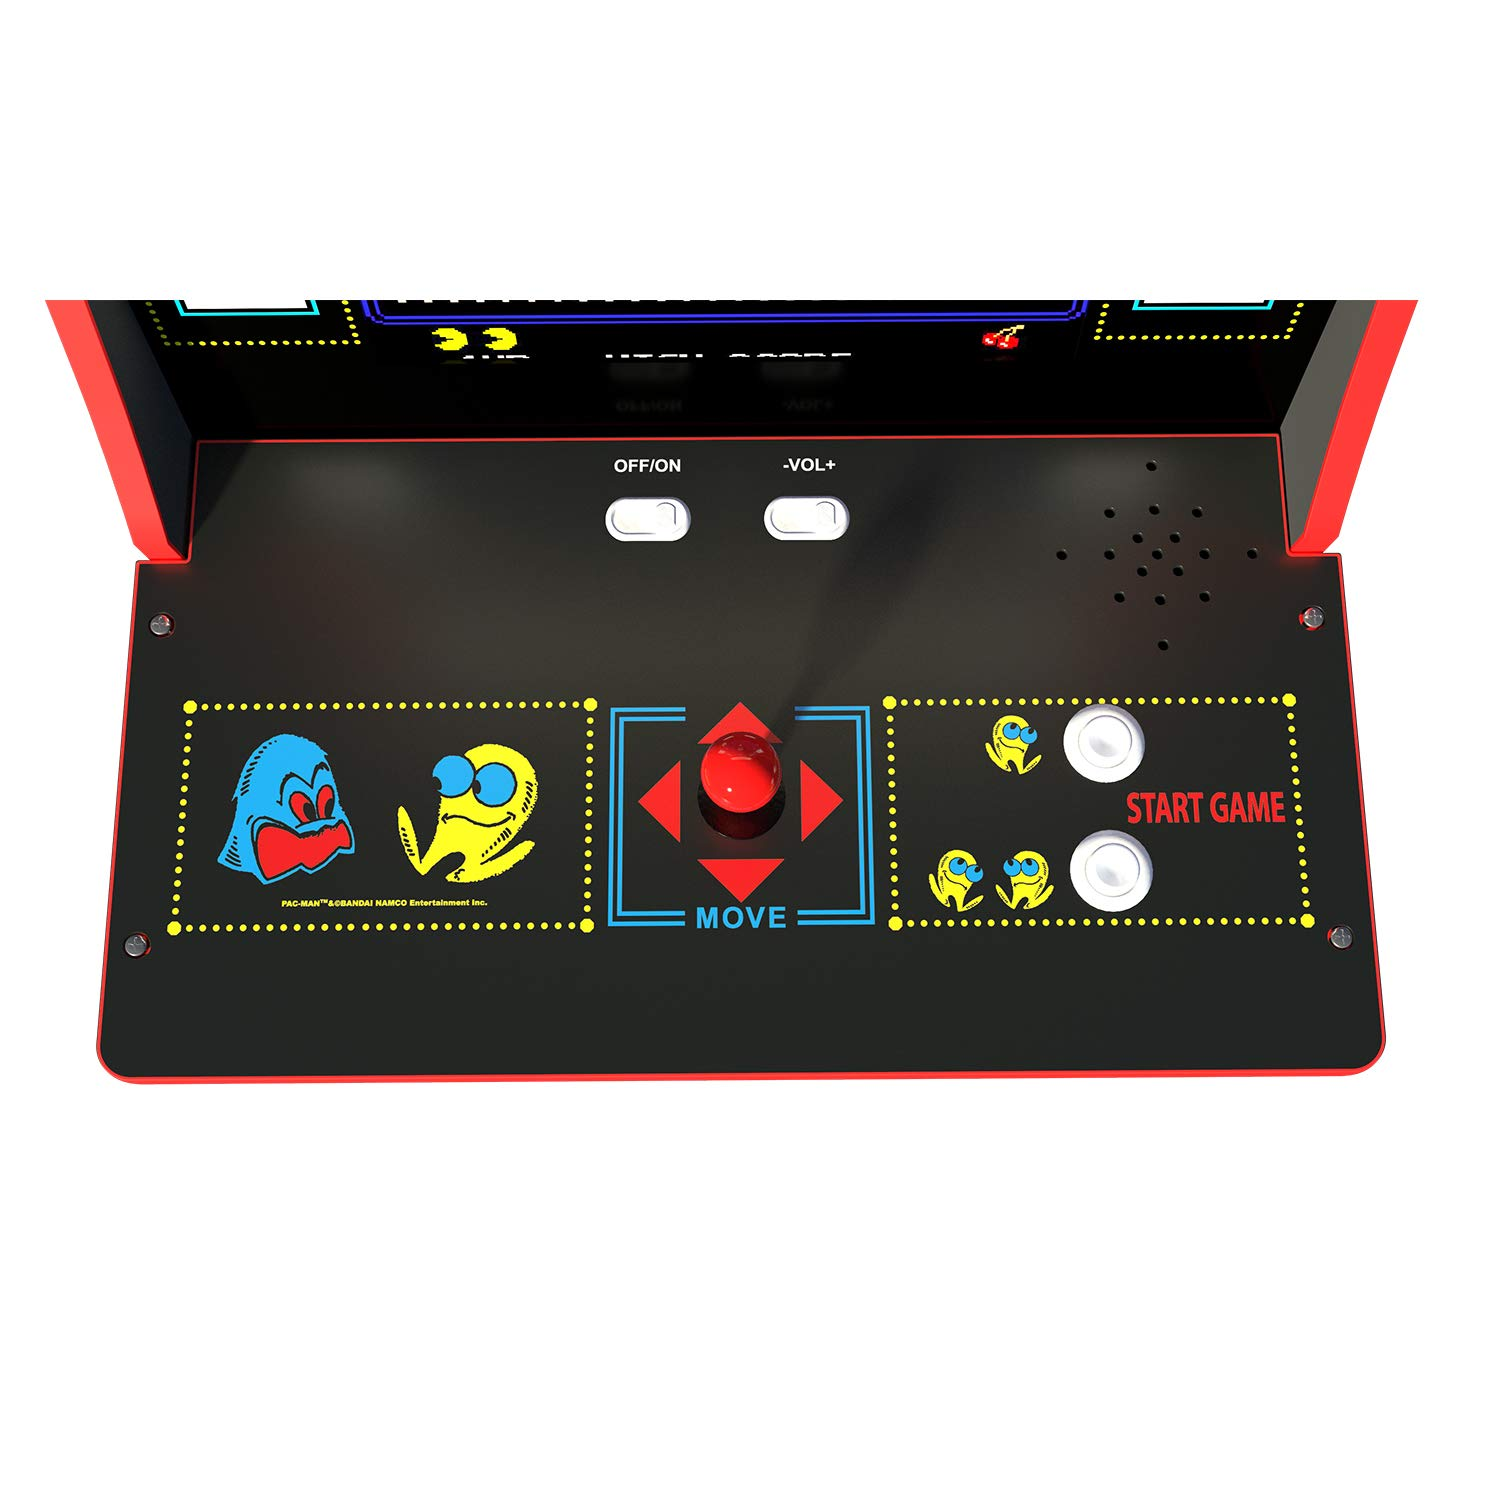 Arcade 1Up Pac-Man Deluxe Arcade System with Riser, 5ft by Arcade 1Up (Image #2)